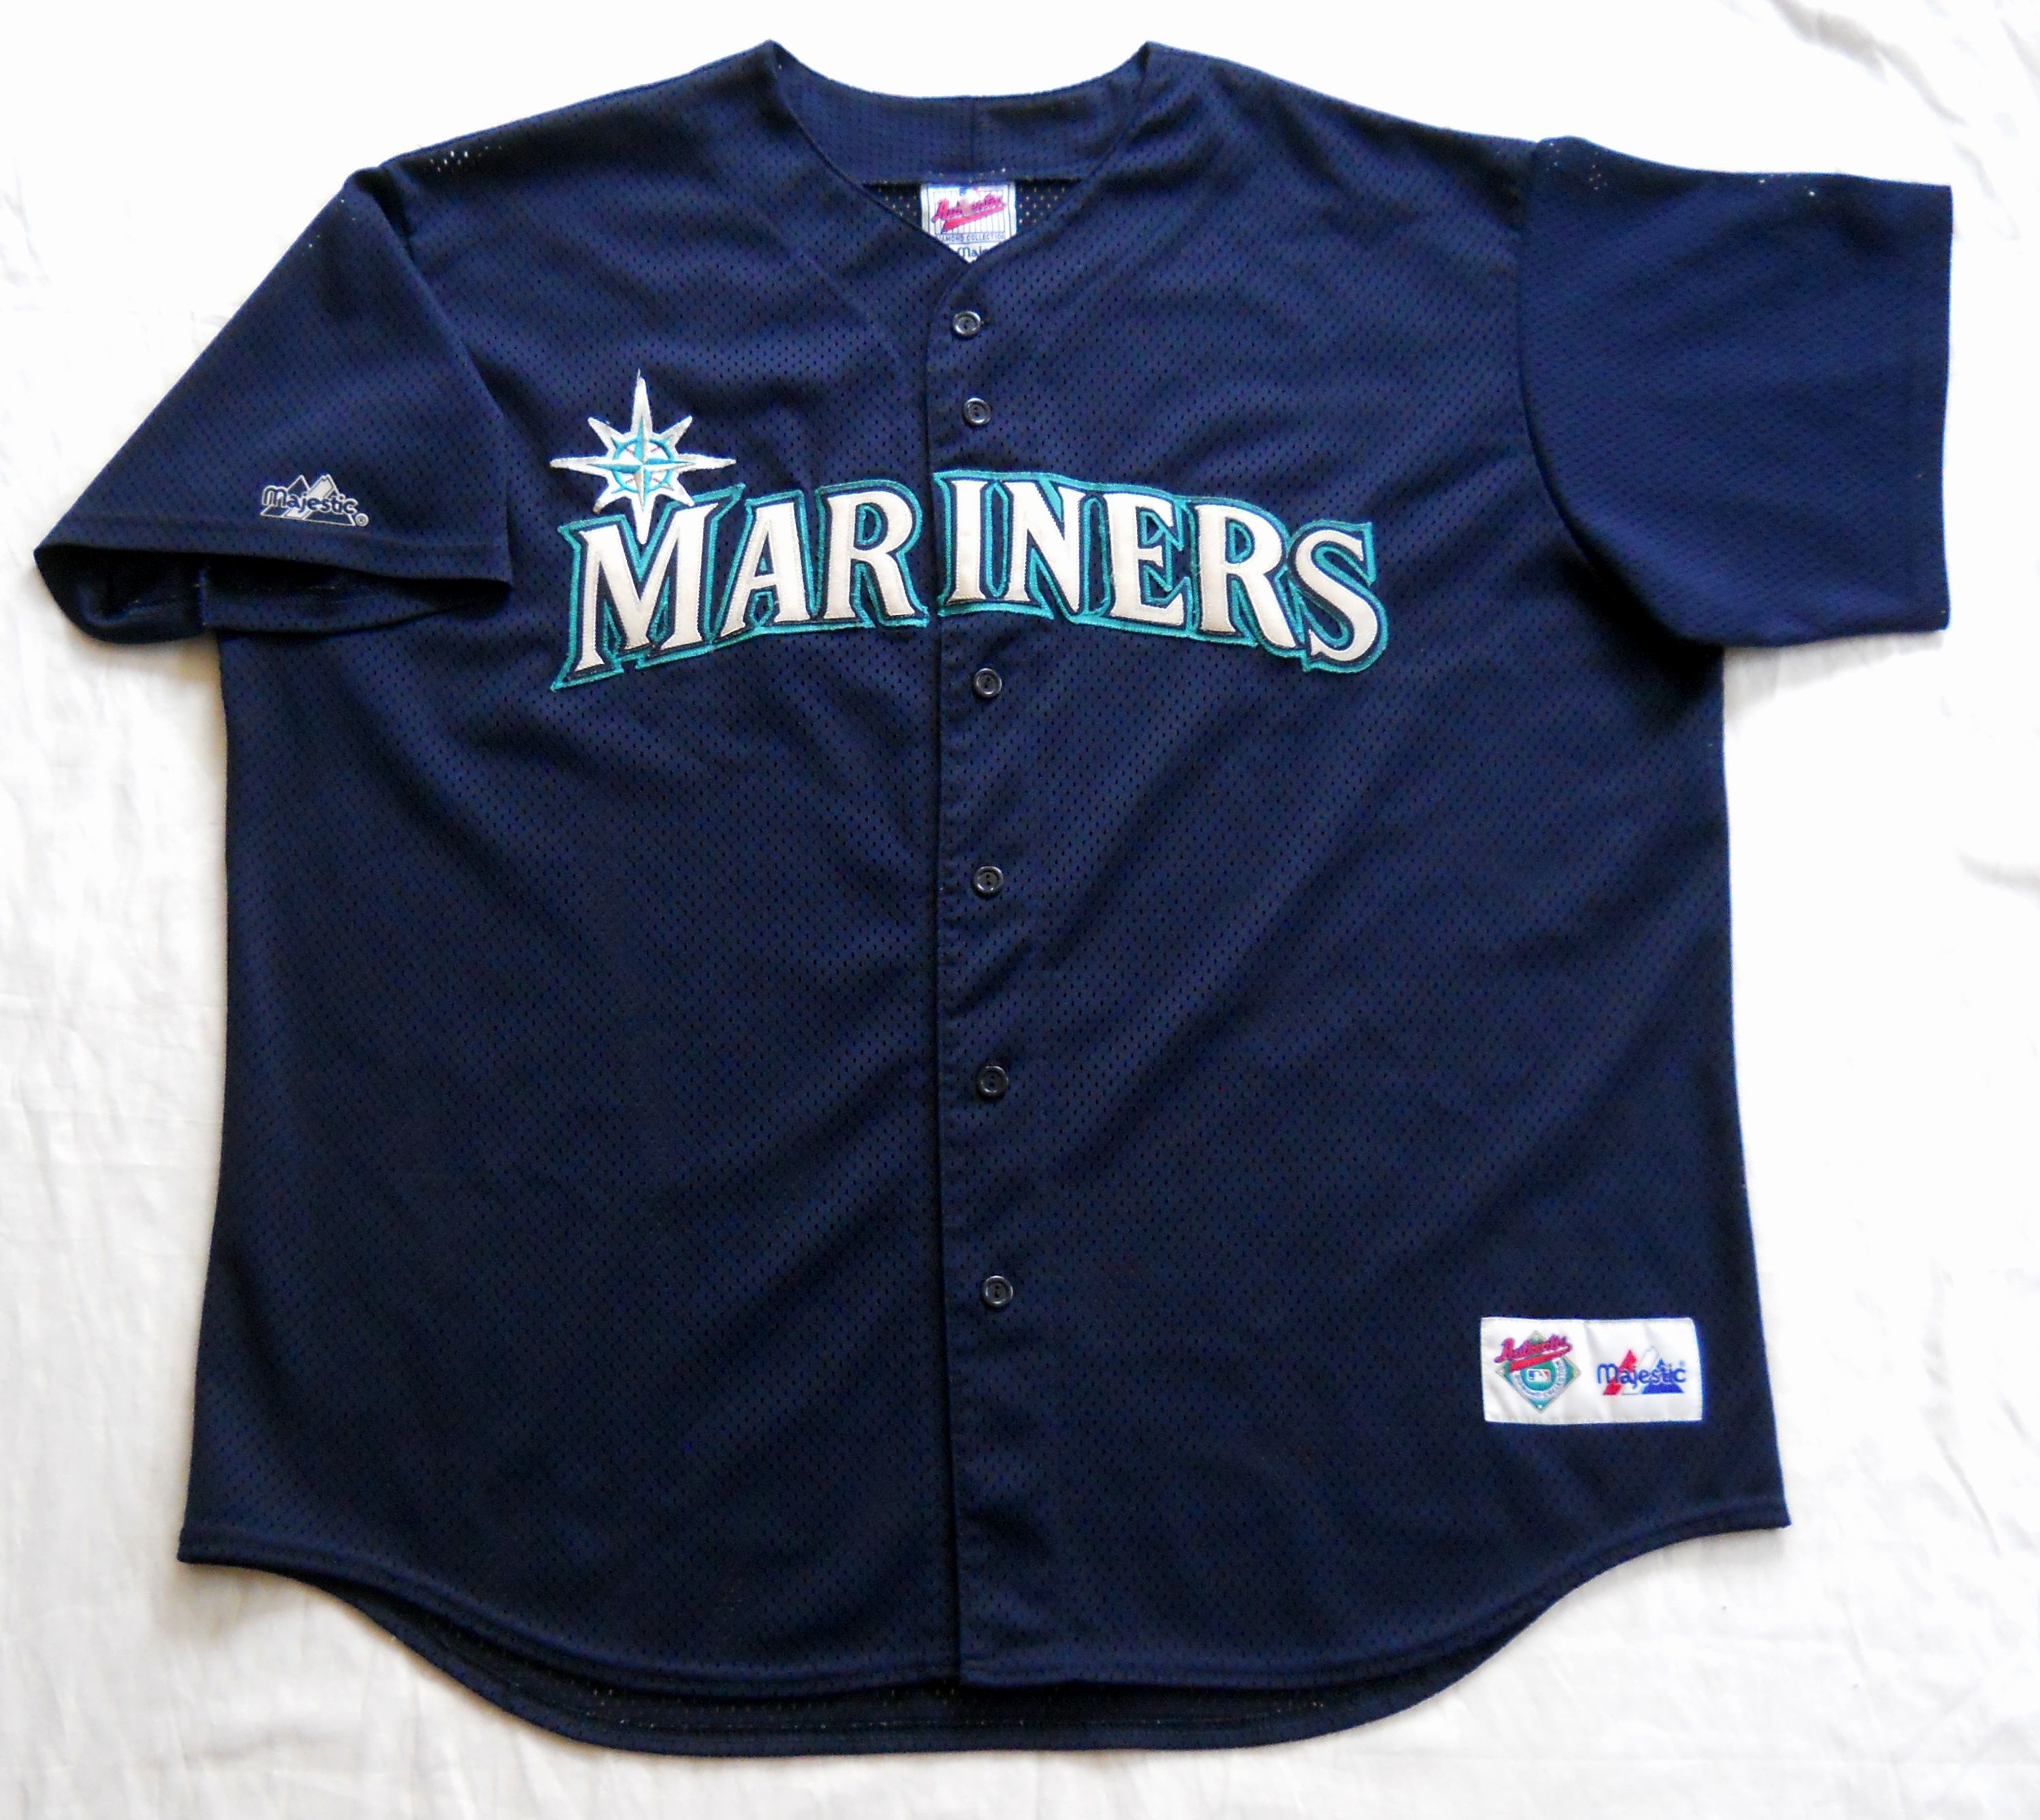 1d8e546f Vintage late 90s Seattle Mariners Authentic Diamond Collection Batting  Practice Jersey by Majestic. Men's XL (pre-owned)